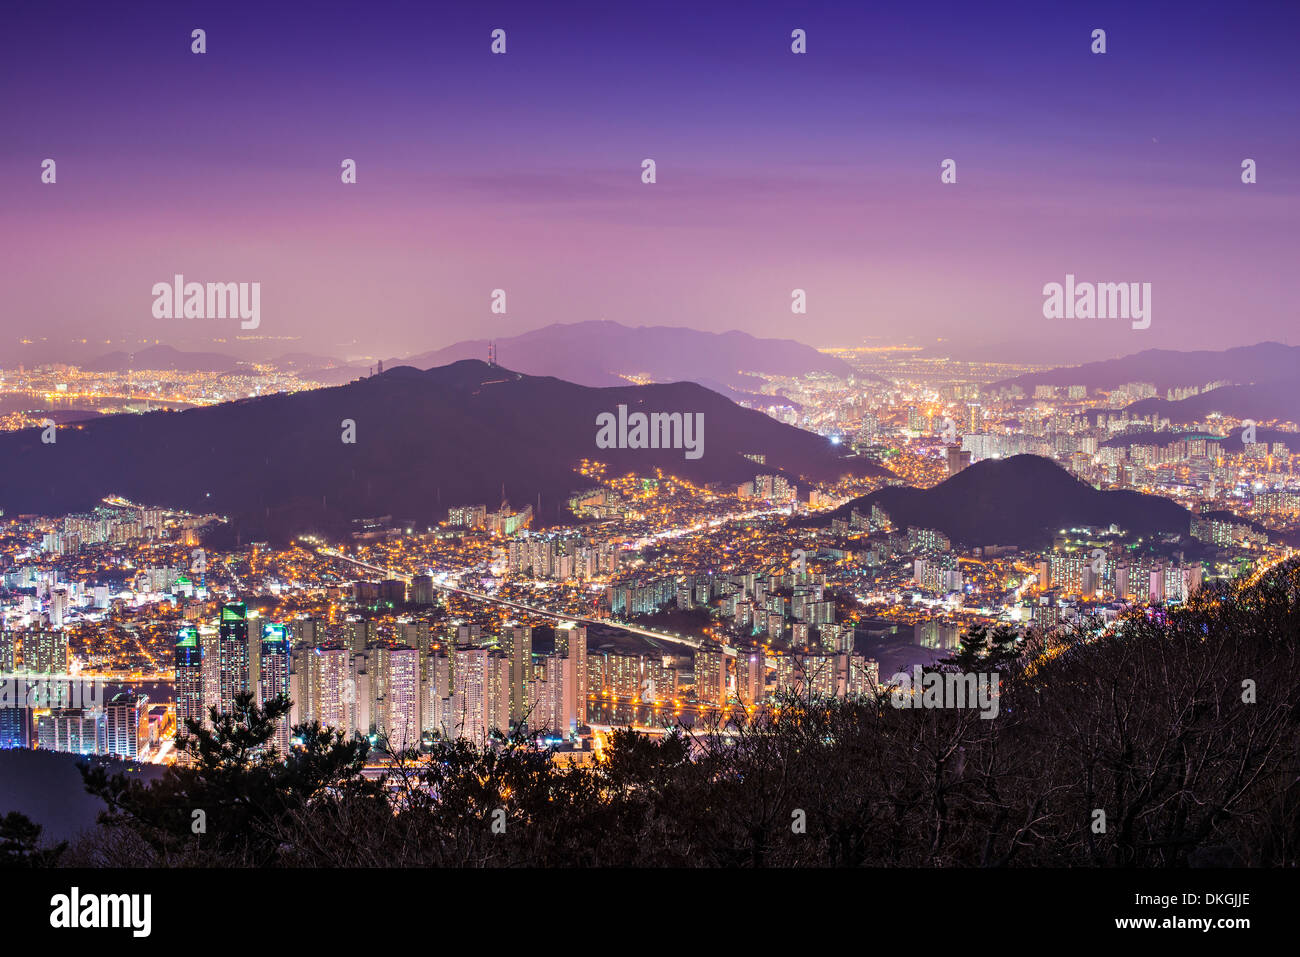 High rises and mountains in Busan, South Korea. - Stock Image